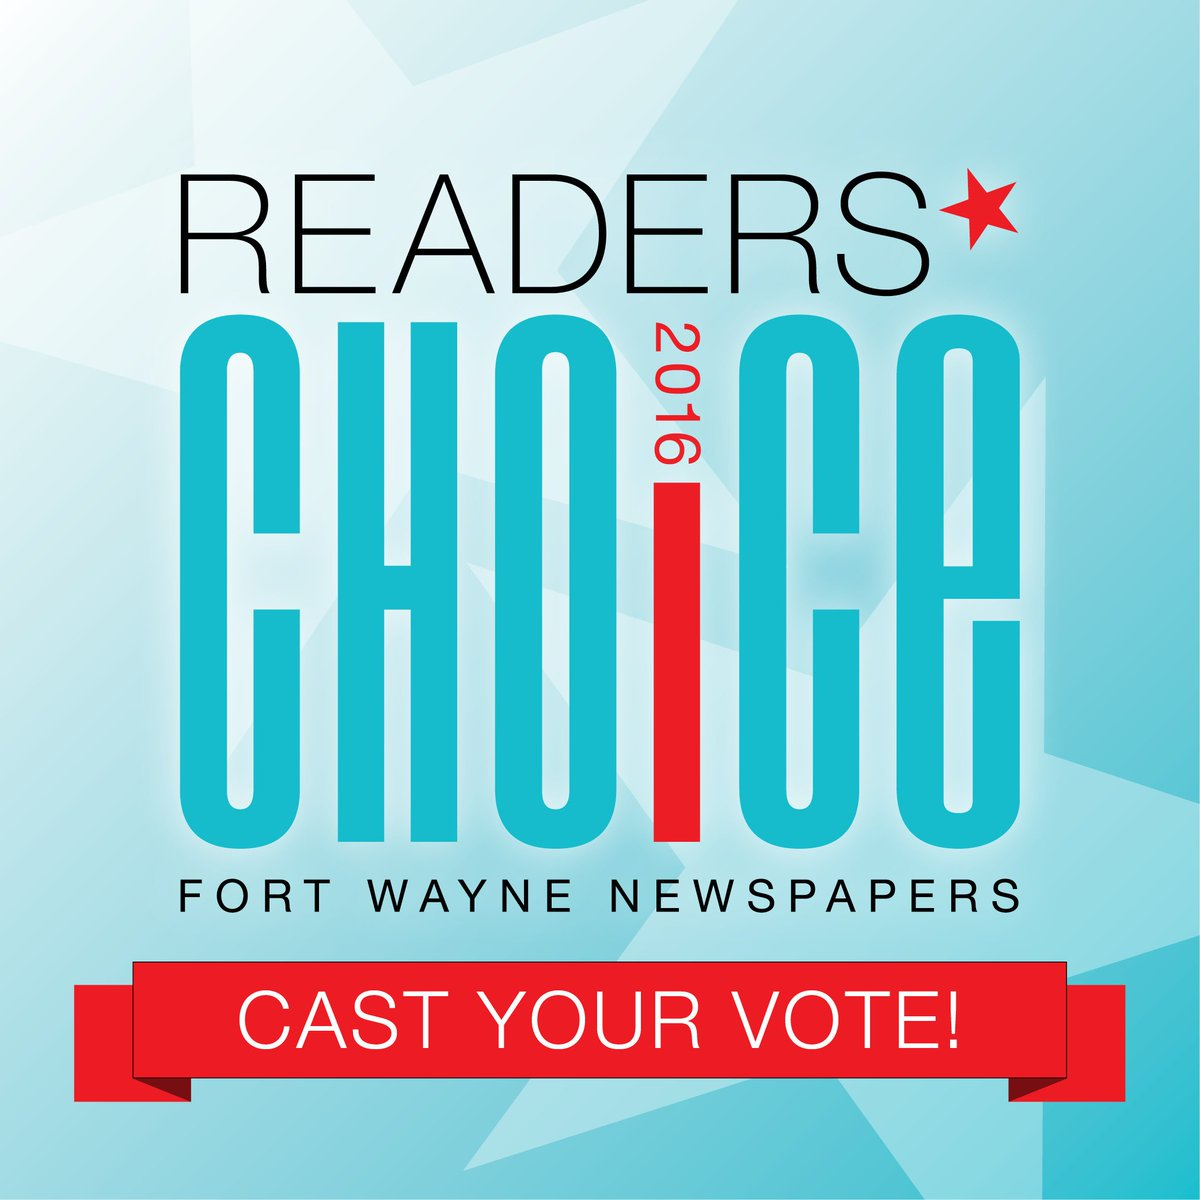 Voting is now live! Best of luck to all of the nominees! #FWNreaderschoice2016 https://t.co/1EBnwUN7tO https://t.co/bCeNfAzQJd